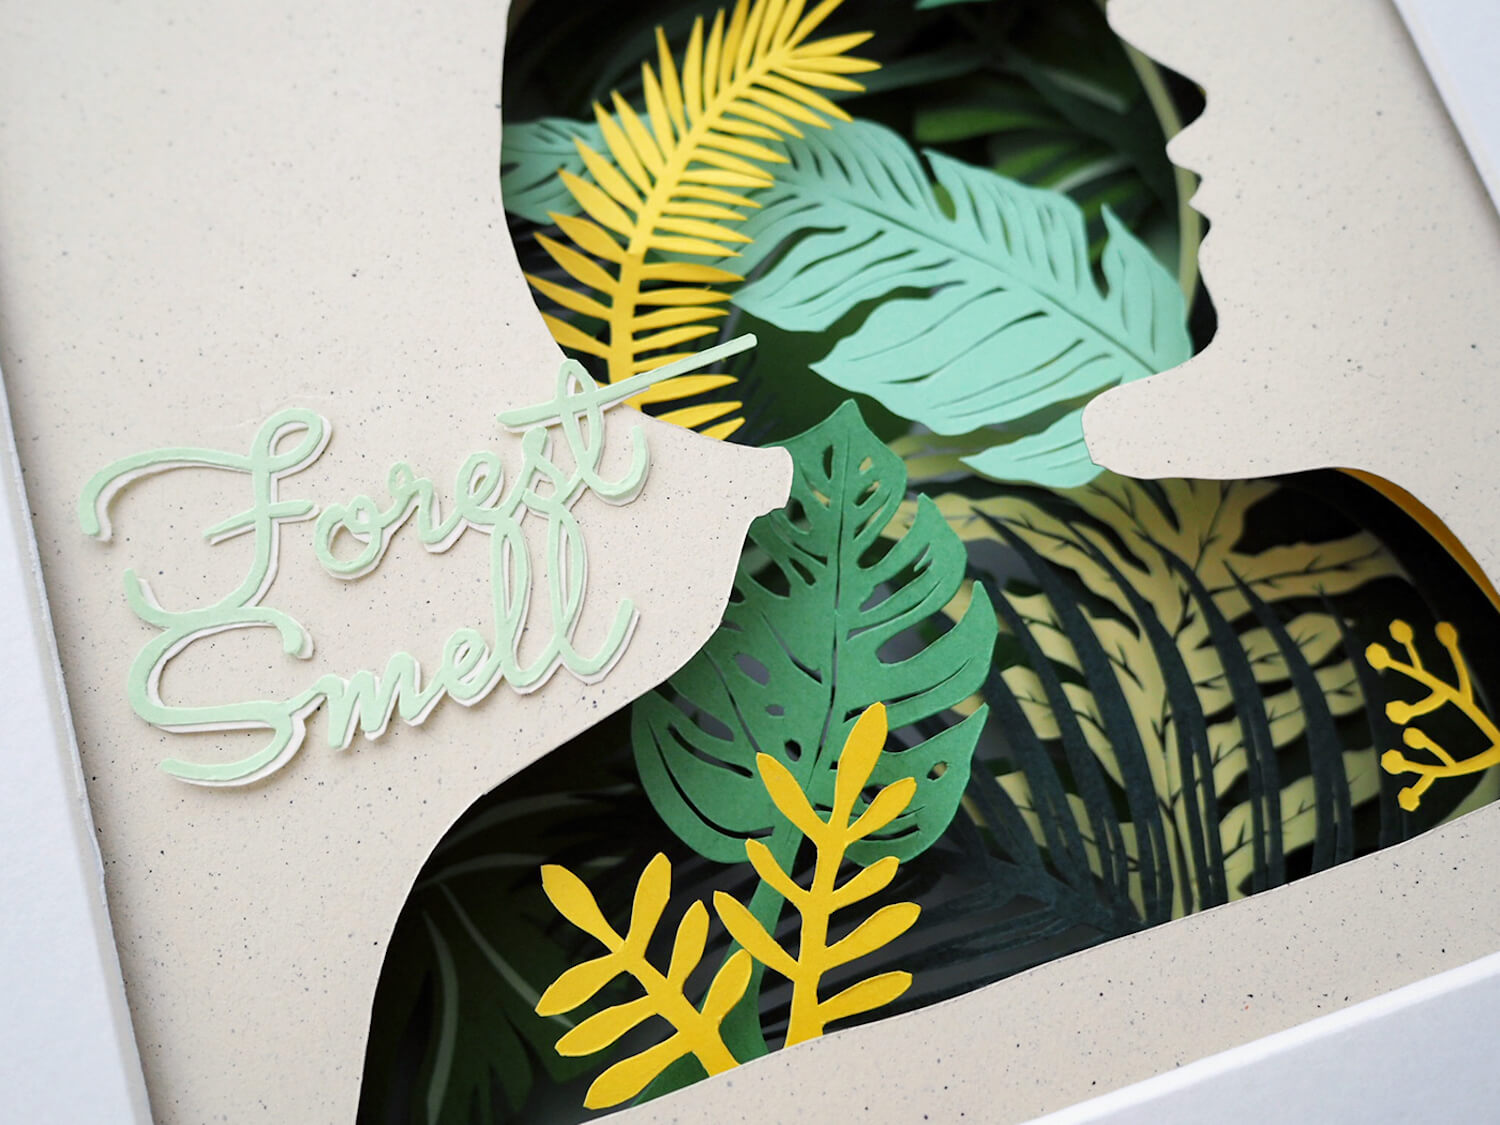 cut paper illustration by Chao Zou